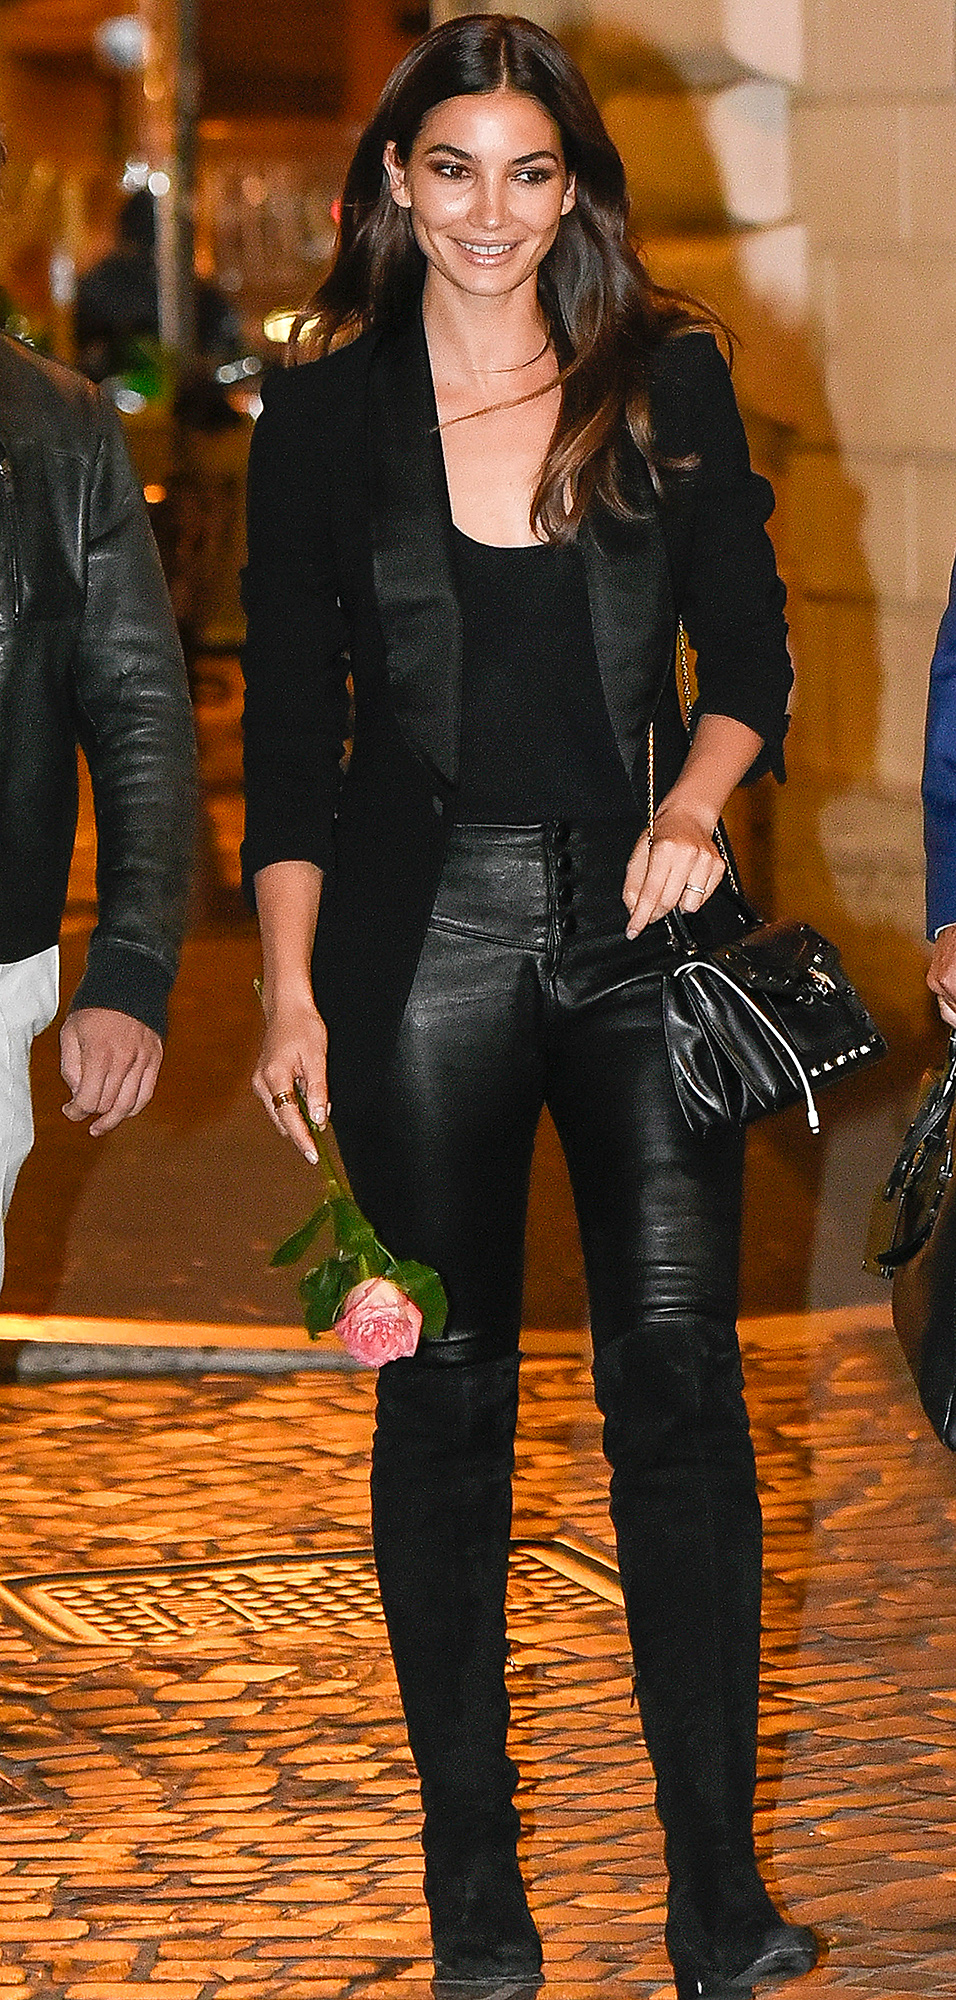 Lily Aldridge and husband dinner in Rome